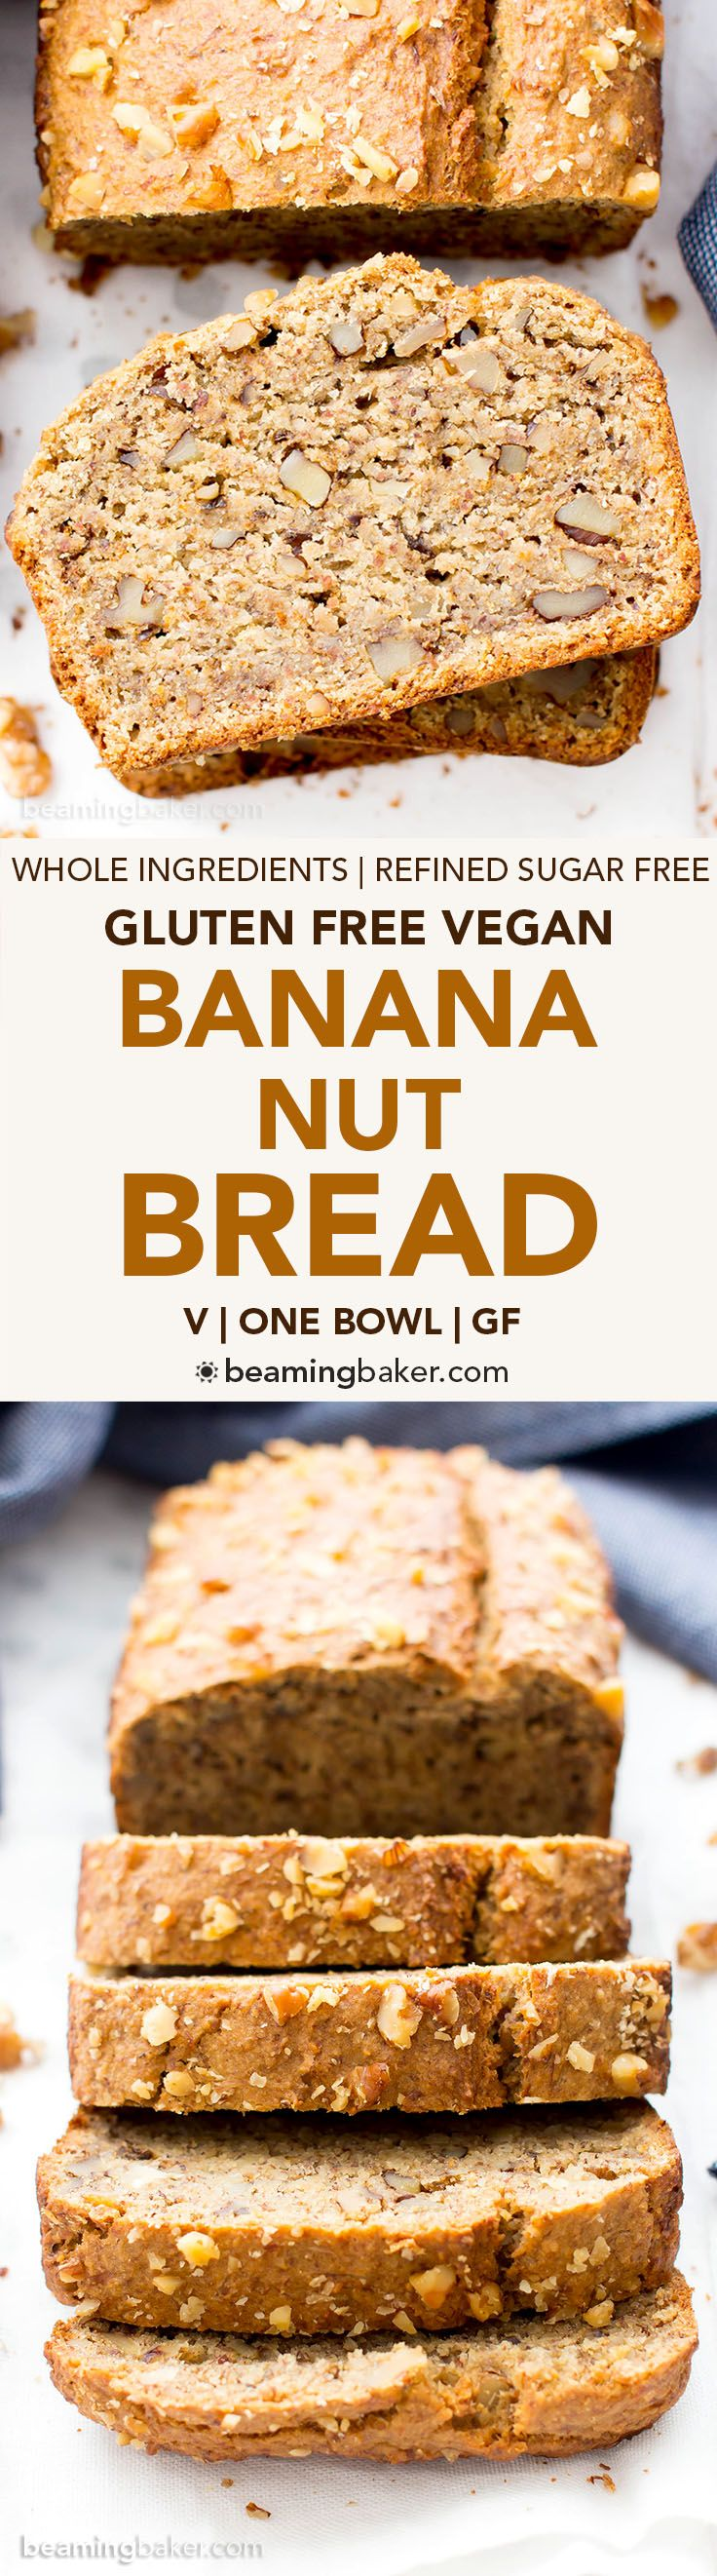 One Bowl Vegan Gluten Free Banana Nut Bread #GlutenFree #DairyFree #RefineSugarFree | BeamingBaker.com